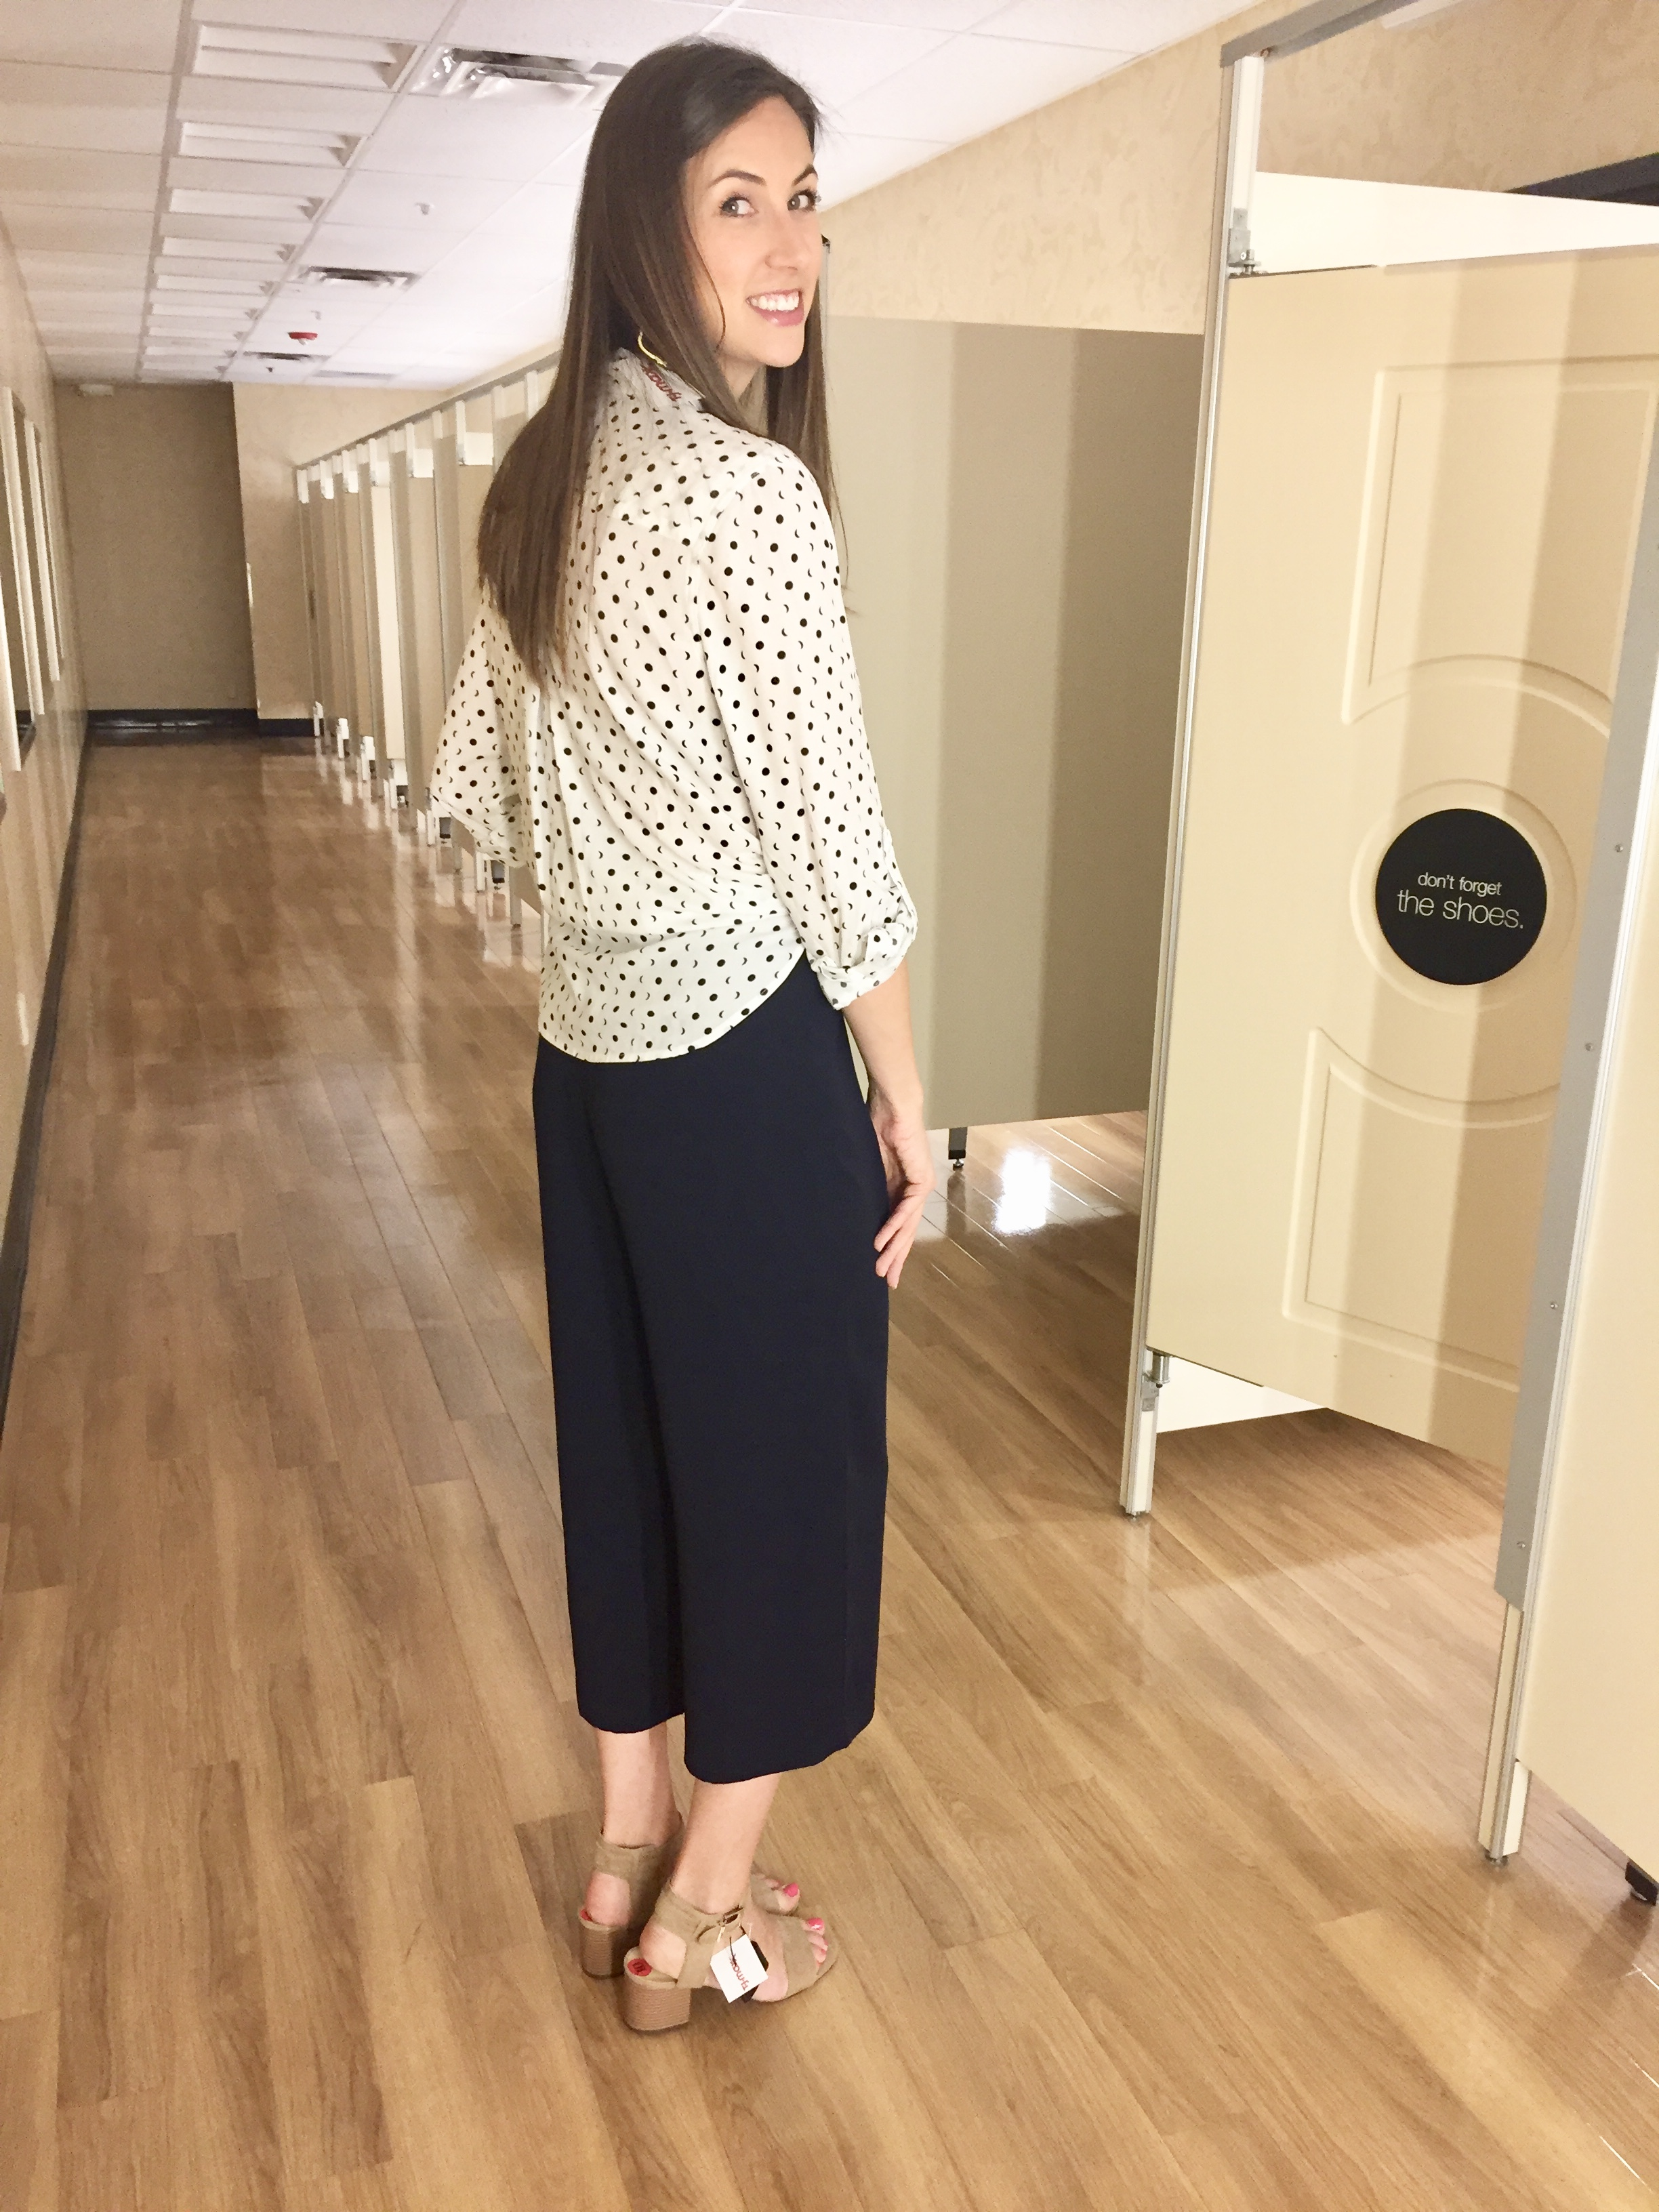 after, belt, button up top, style session, needs work, method39, style advice, wardrobe stylist